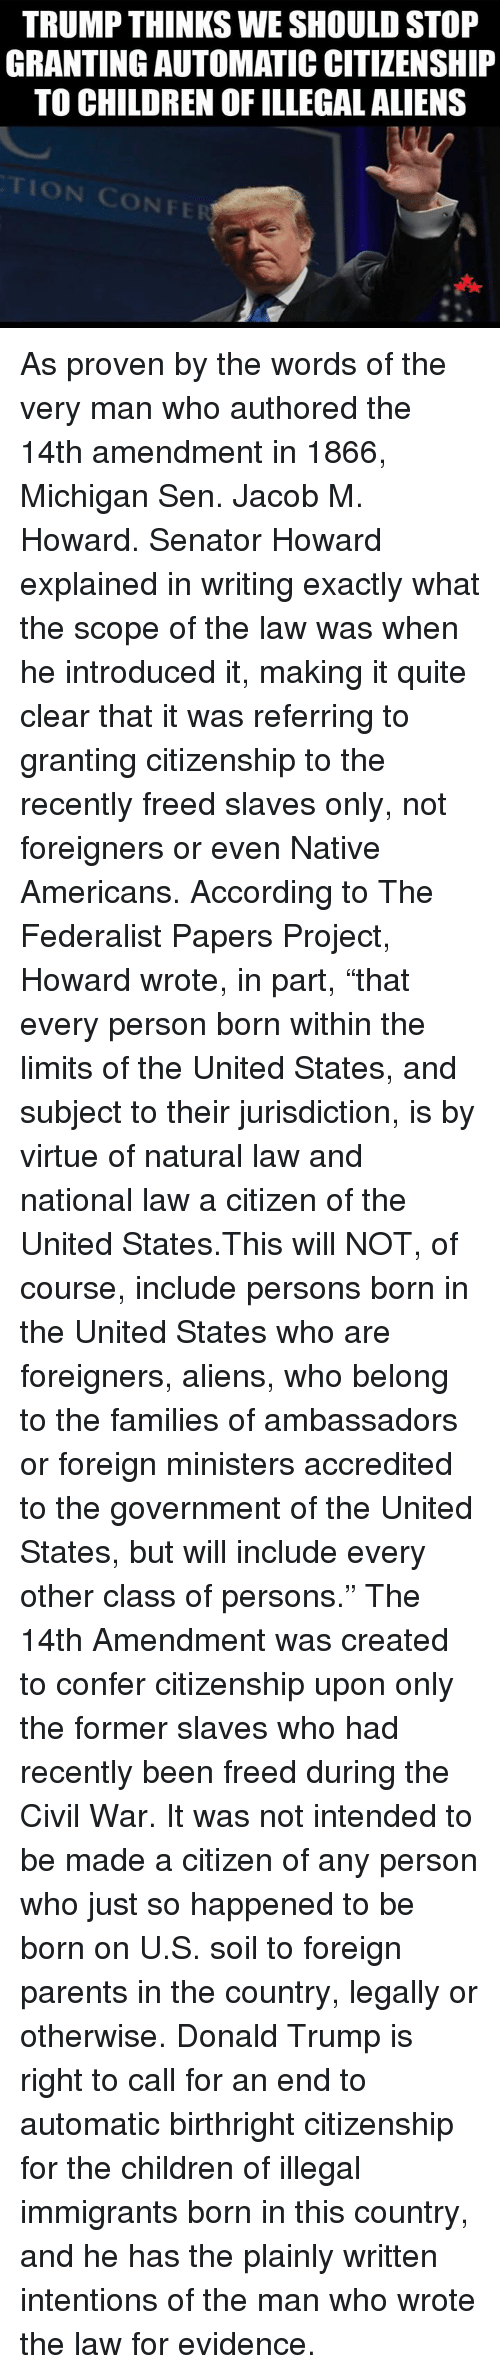 """Donald Trump, Memes, and Native American: TRUMP THINKS WE SHOULD STOP  GRANTING AUTOMATICCITIZENSHIP  TO CHILDREN OF ILLEGAL ALIENS As proven by the words of the very man who authored the 14th amendment in 1866, Michigan Sen. Jacob M. Howard. Senator Howard explained in writing exactly what the scope of the law was when he introduced it, making it quite clear that it was referring to granting citizenship to the recently freed slaves only, not foreigners or even Native Americans.  According to The Federalist Papers Project, Howard wrote, in part, """"that every person born within the limits of the United States, and subject to their jurisdiction, is by virtue of natural law and national law a citizen of the United States.This will NOT, of course, include persons born in the United States who are foreigners, aliens, who belong to the families of ambassadors or foreign ministers accredited to the government of the United States, but will include every other class of persons.""""  The 14th Amendment was created to confer citizenship upon only the former slaves who had recently been freed during the Civil War. It was not intended to be made a citizen of any person who just so happened to be born on U.S. soil to foreign parents in the country, legally or otherwise.  Donald Trump is right to call for an end to automatic birthright citizenship for the children of illegal immigrants born in this country, and he has the plainly written intentions of the man who wrote the law for evidence."""